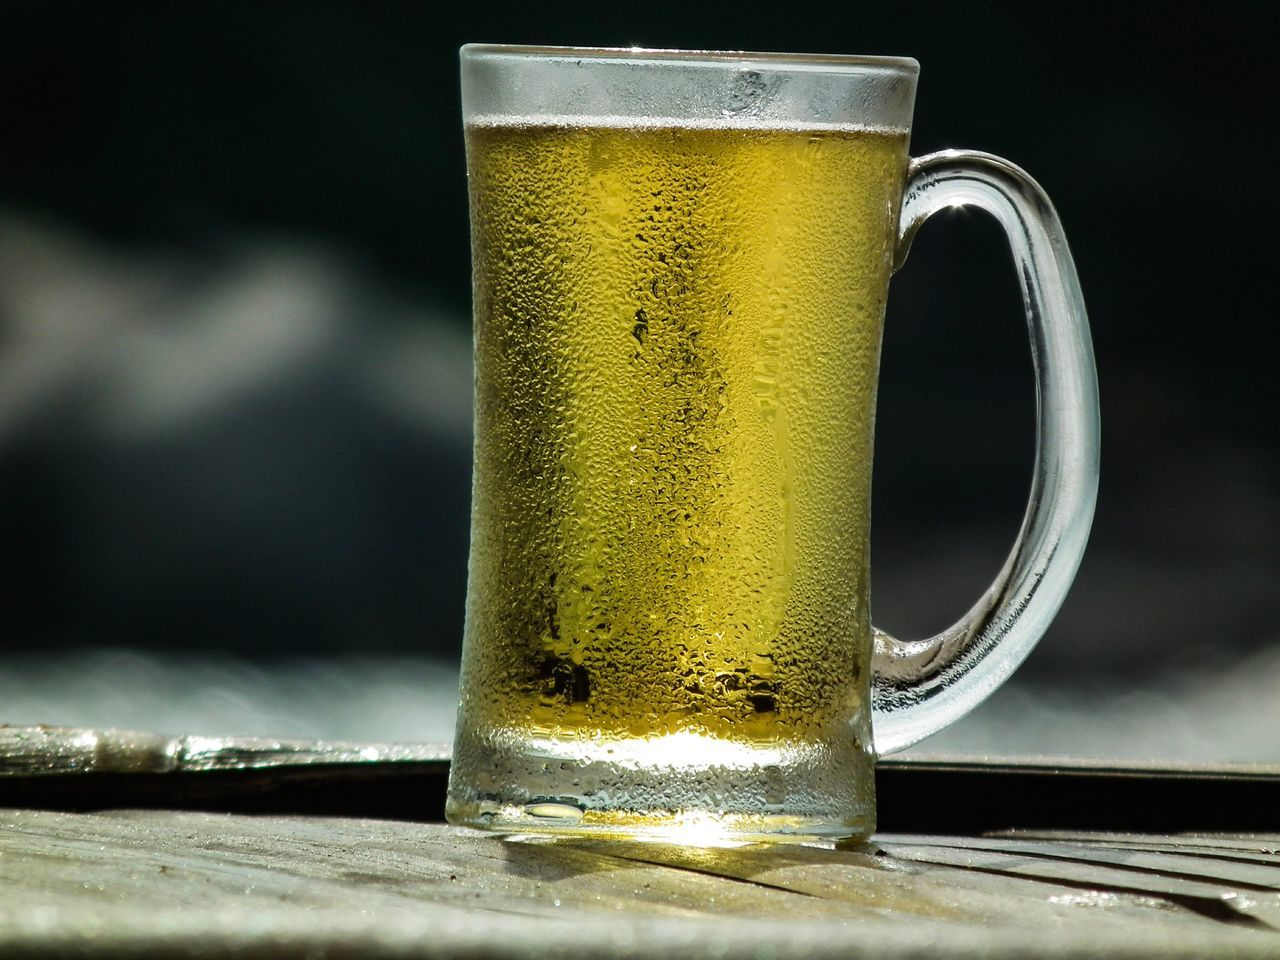 Draft Beer make your thought is relaxing 😉 Beer - Alcohol Beer Glass Drink Refreshment Table Frothy Drink Close-up Beer Food And Drink No People Alcohol Drinking Glass Freshness Froth Focus On Foreground Pint Glass Cold Temperature Day Indoors